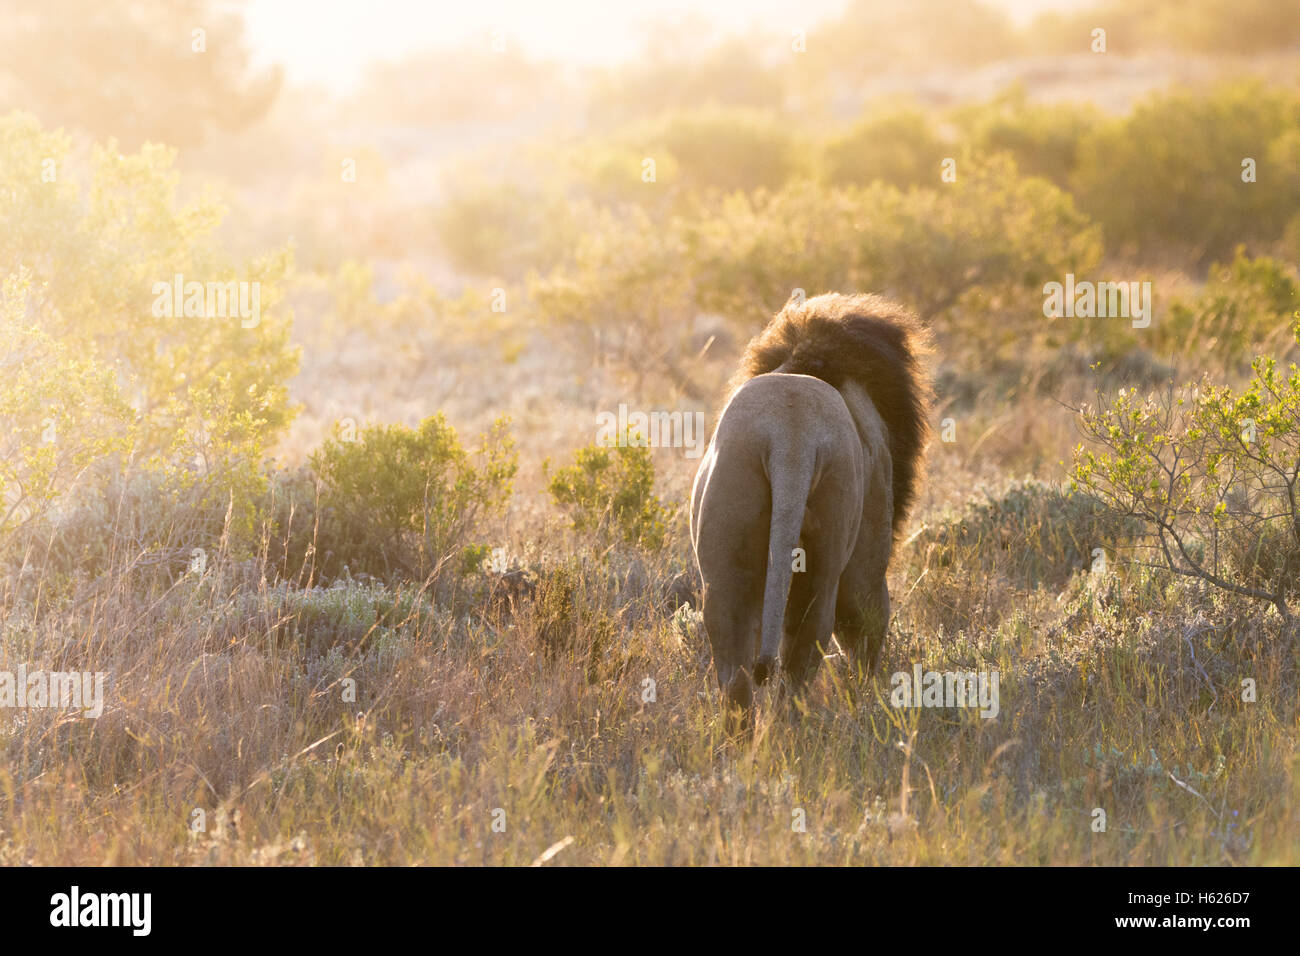 Lion walking in to the distance - Stock Image